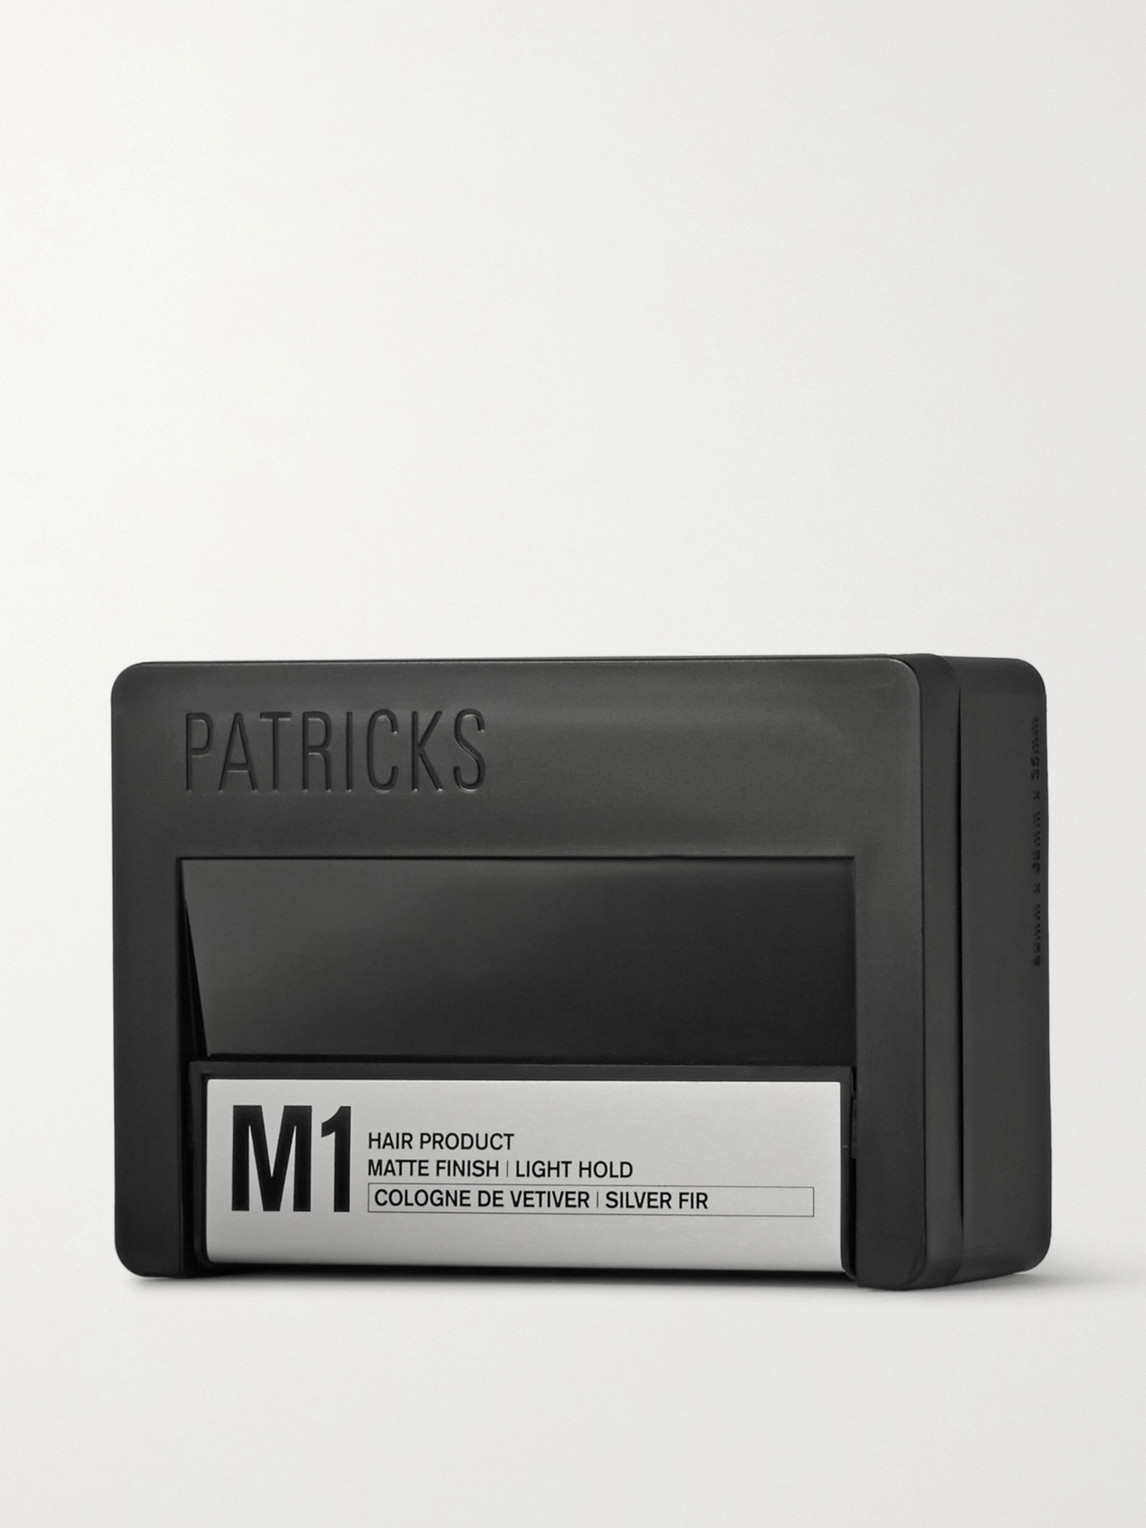 Patricks M2 Matte Finish Medium Hold Styling Product 75g In Colorless